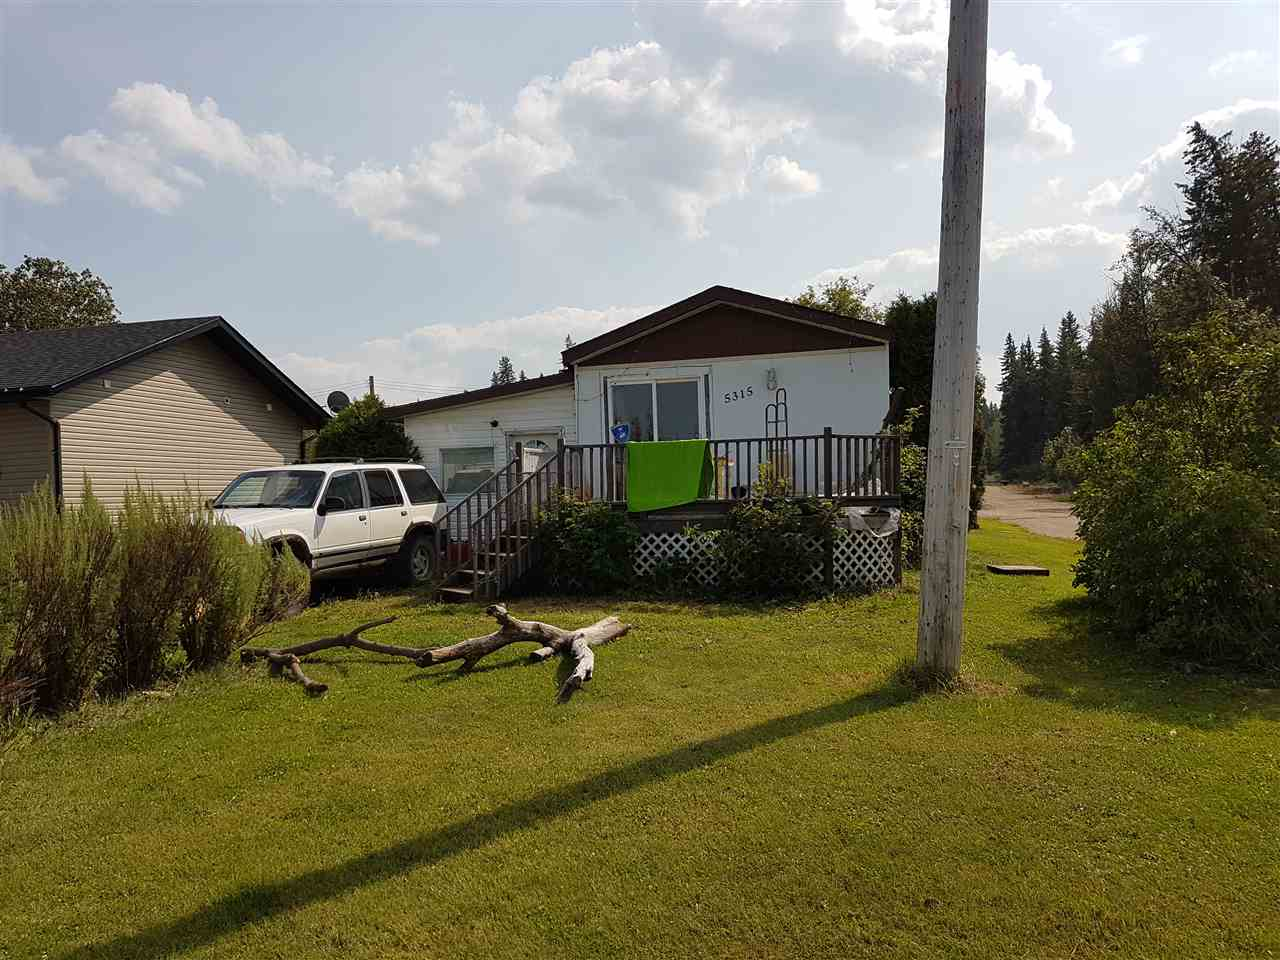 MLS® listing #E4140271 for sale located at 5315-49 Ave